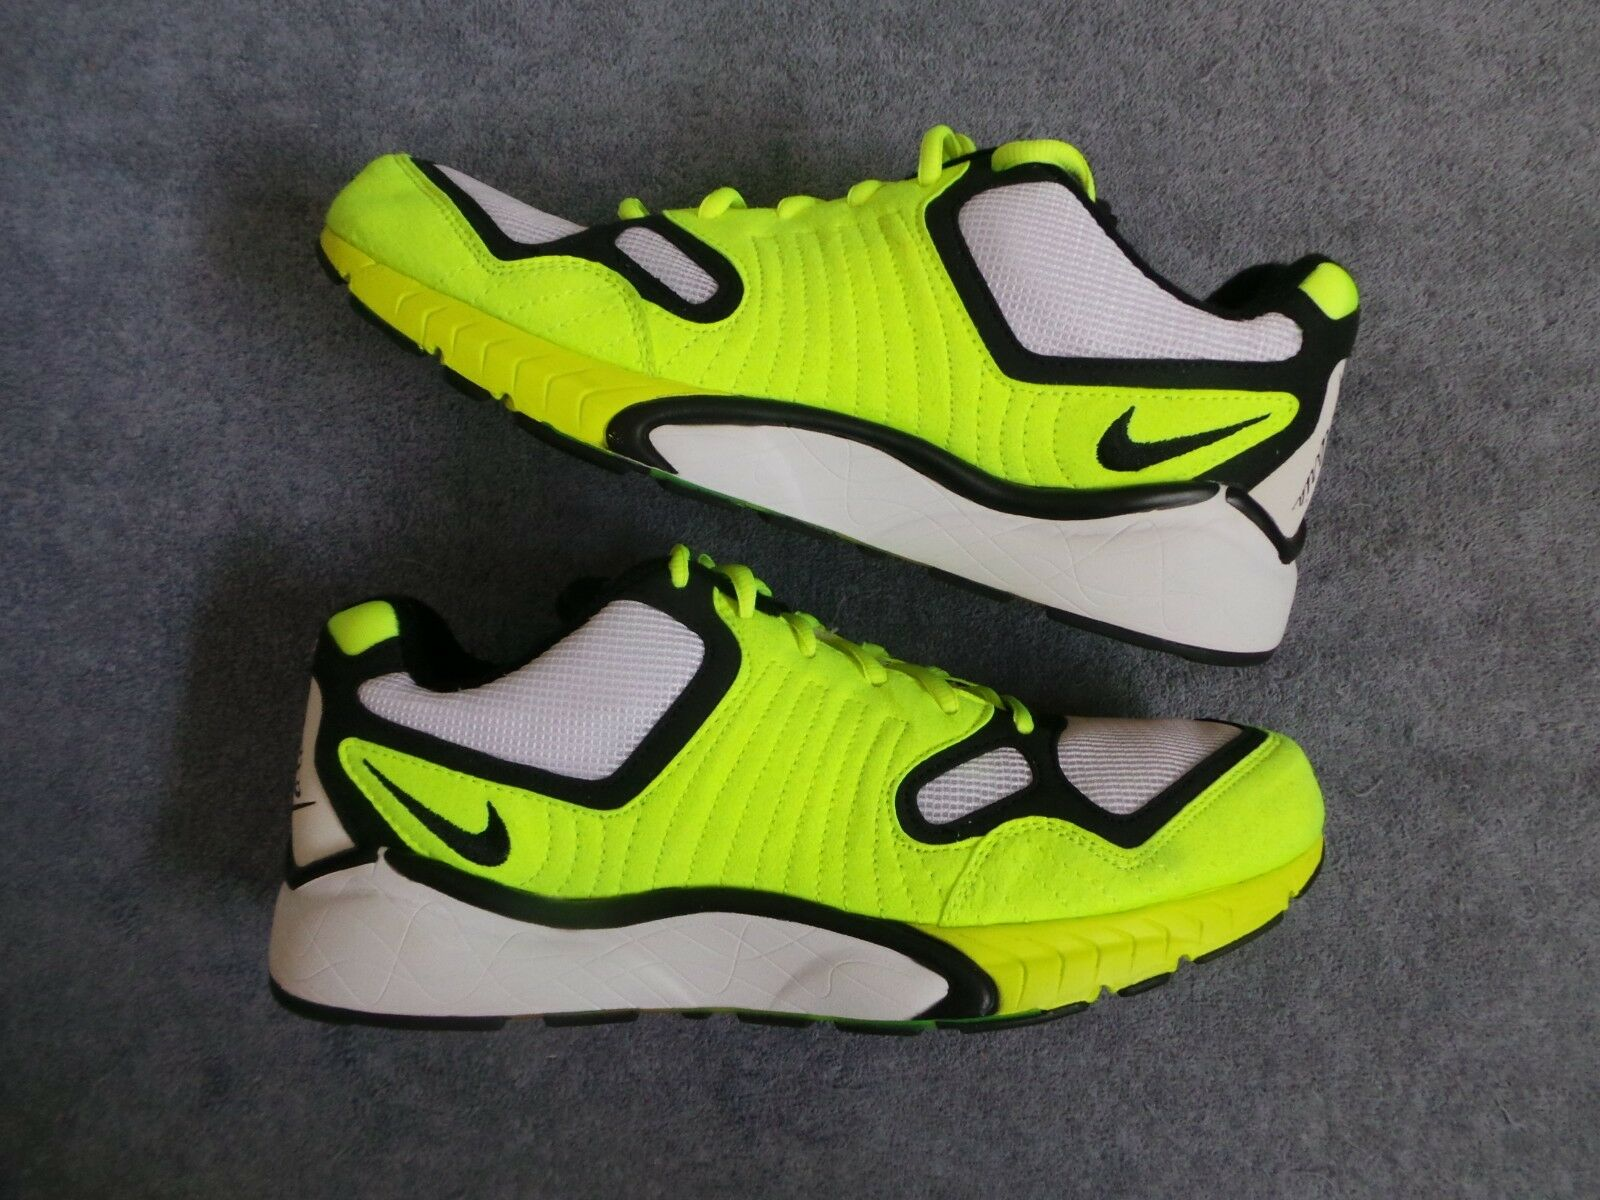 Nike Zoom Talaria 2018'16 Retro Air Qs JST Johnson Spiridon Spiridon Johnson 10 Ds Nuevo Michael f0285d